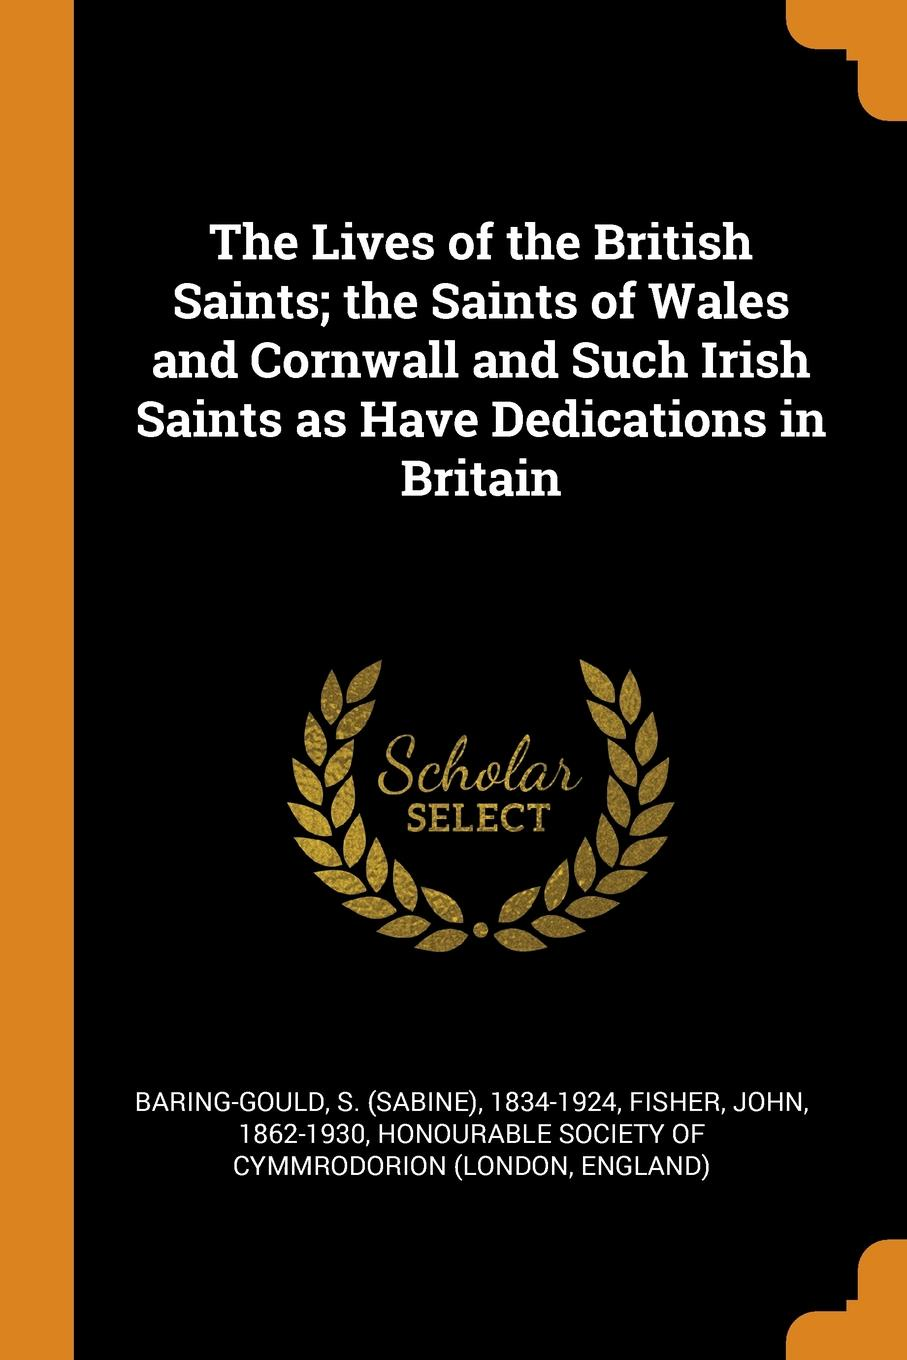 S 1834-1924 Baring-Gould, John Fisher The Lives of the British Saints; the Saints of Wales and Cornwall and Such Irish Saints as Have Dedications in Britain s baring gould the lives of the british saints the saints of wales and cornwall and such irish saints as have dedications i n britain